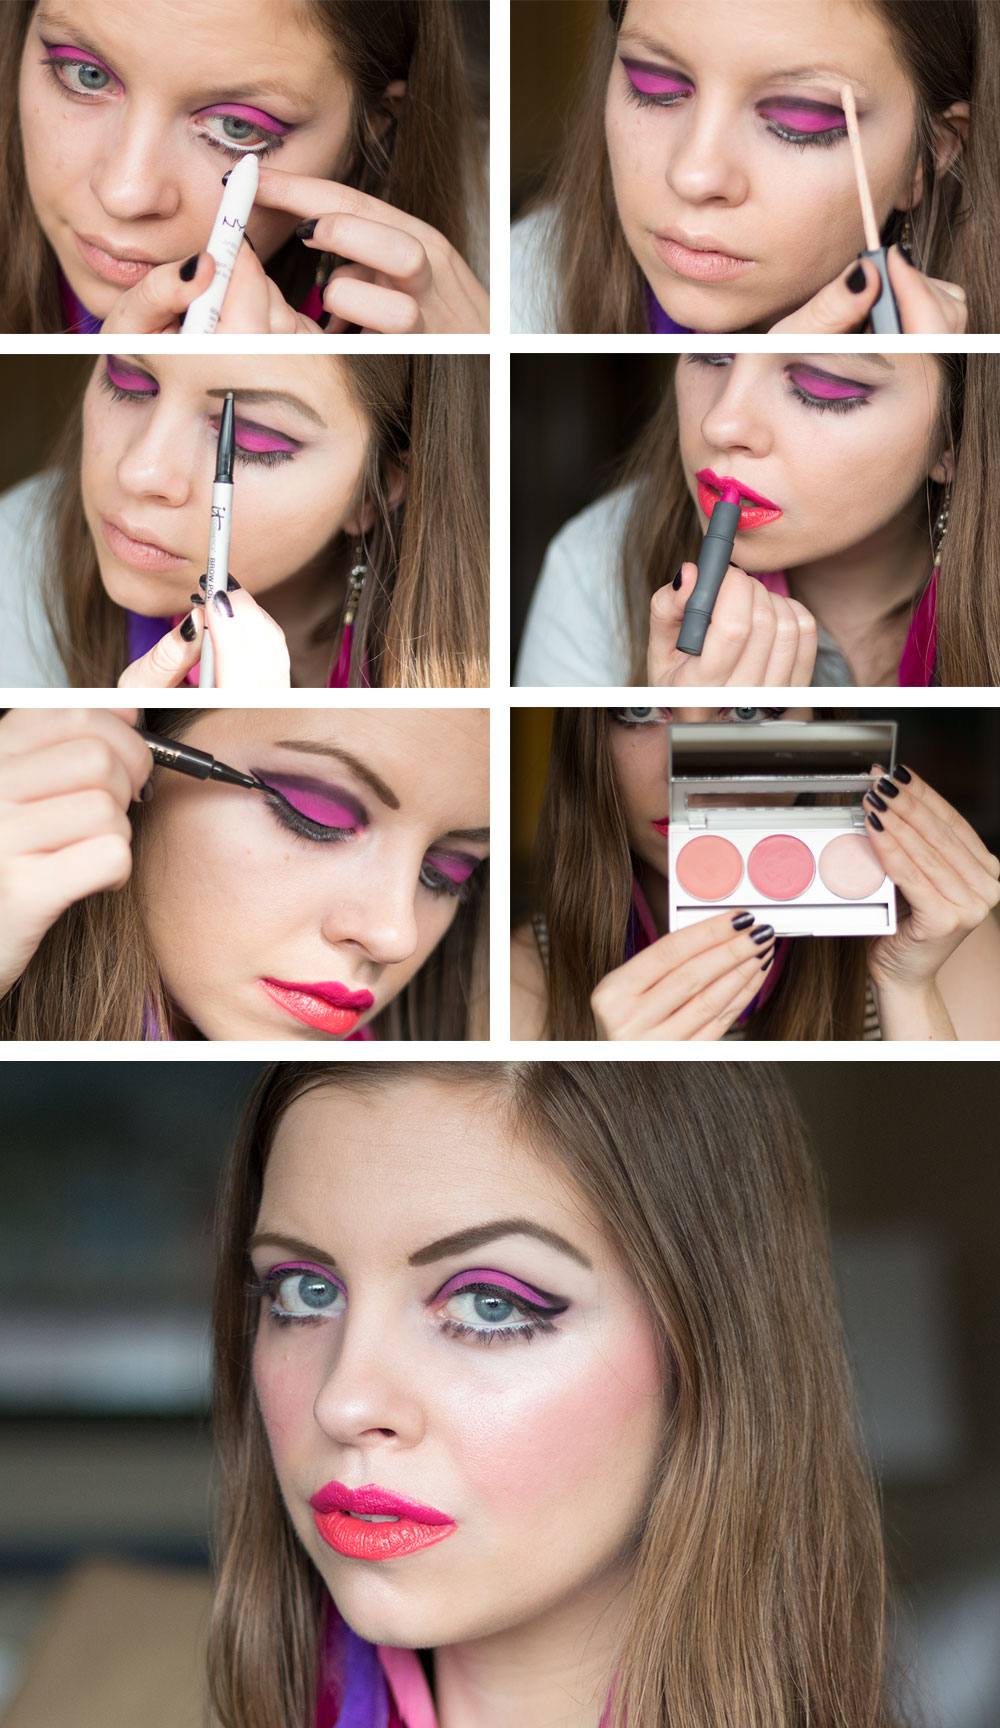 DIY 60s Mod Costume Makeup Tutorial for Twiggy Costume // hellorigby seattle beauty blog